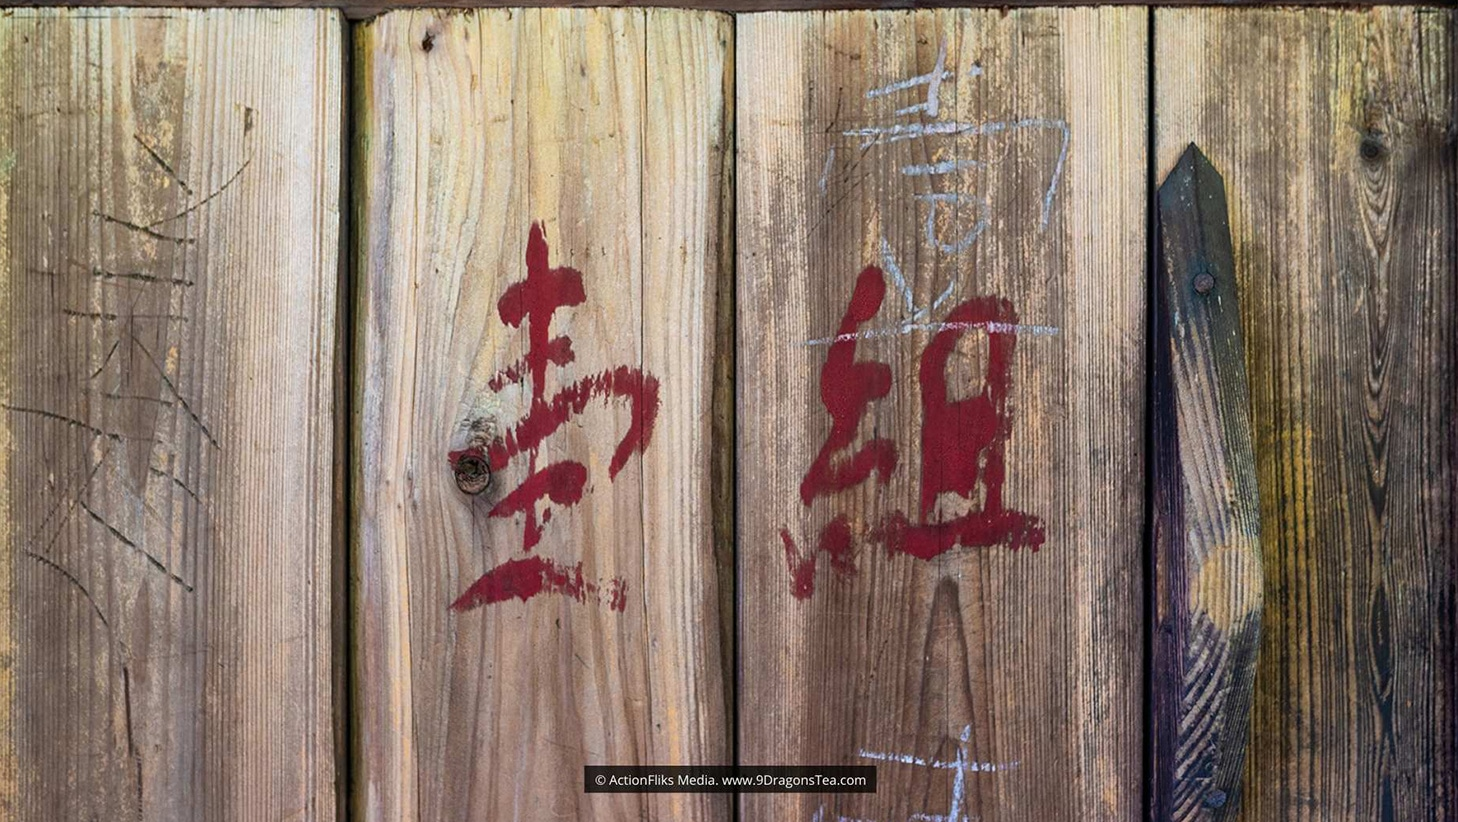 traditional chinese tea making First Group - Words on Wooden Panel - Black Tea Making